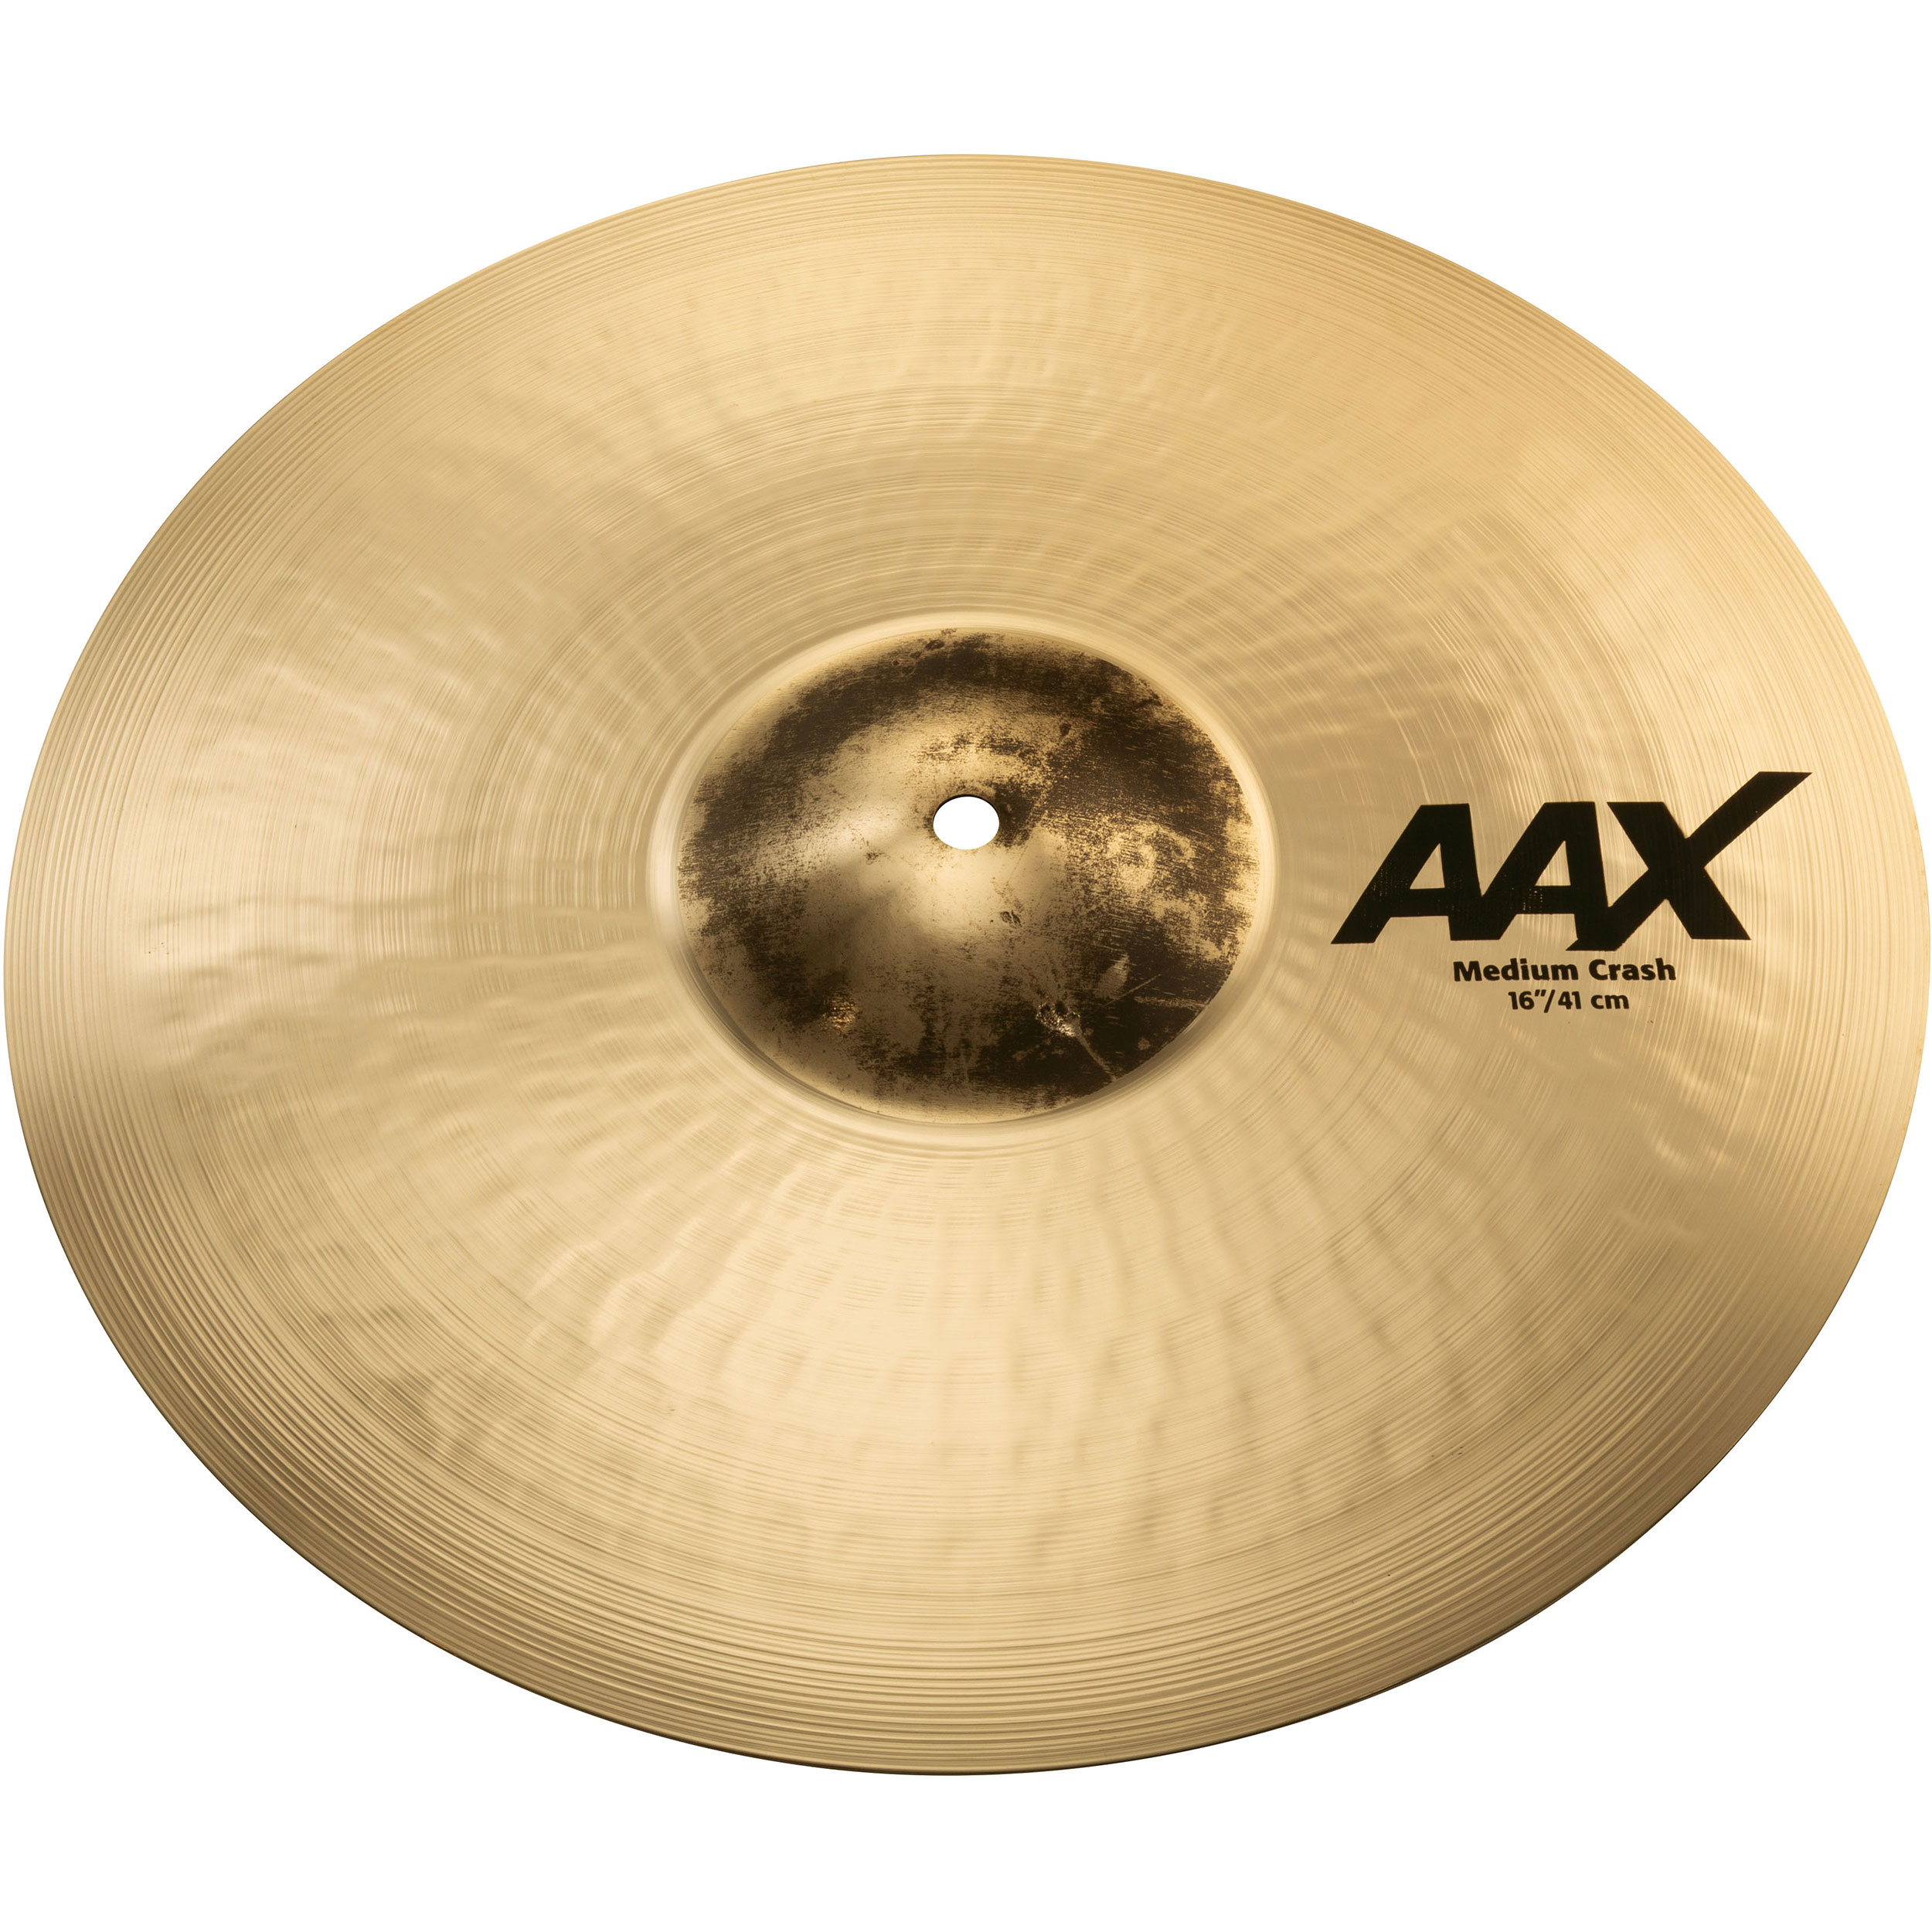 "Sabian 16"" AAX Medium Crash Cymbal"